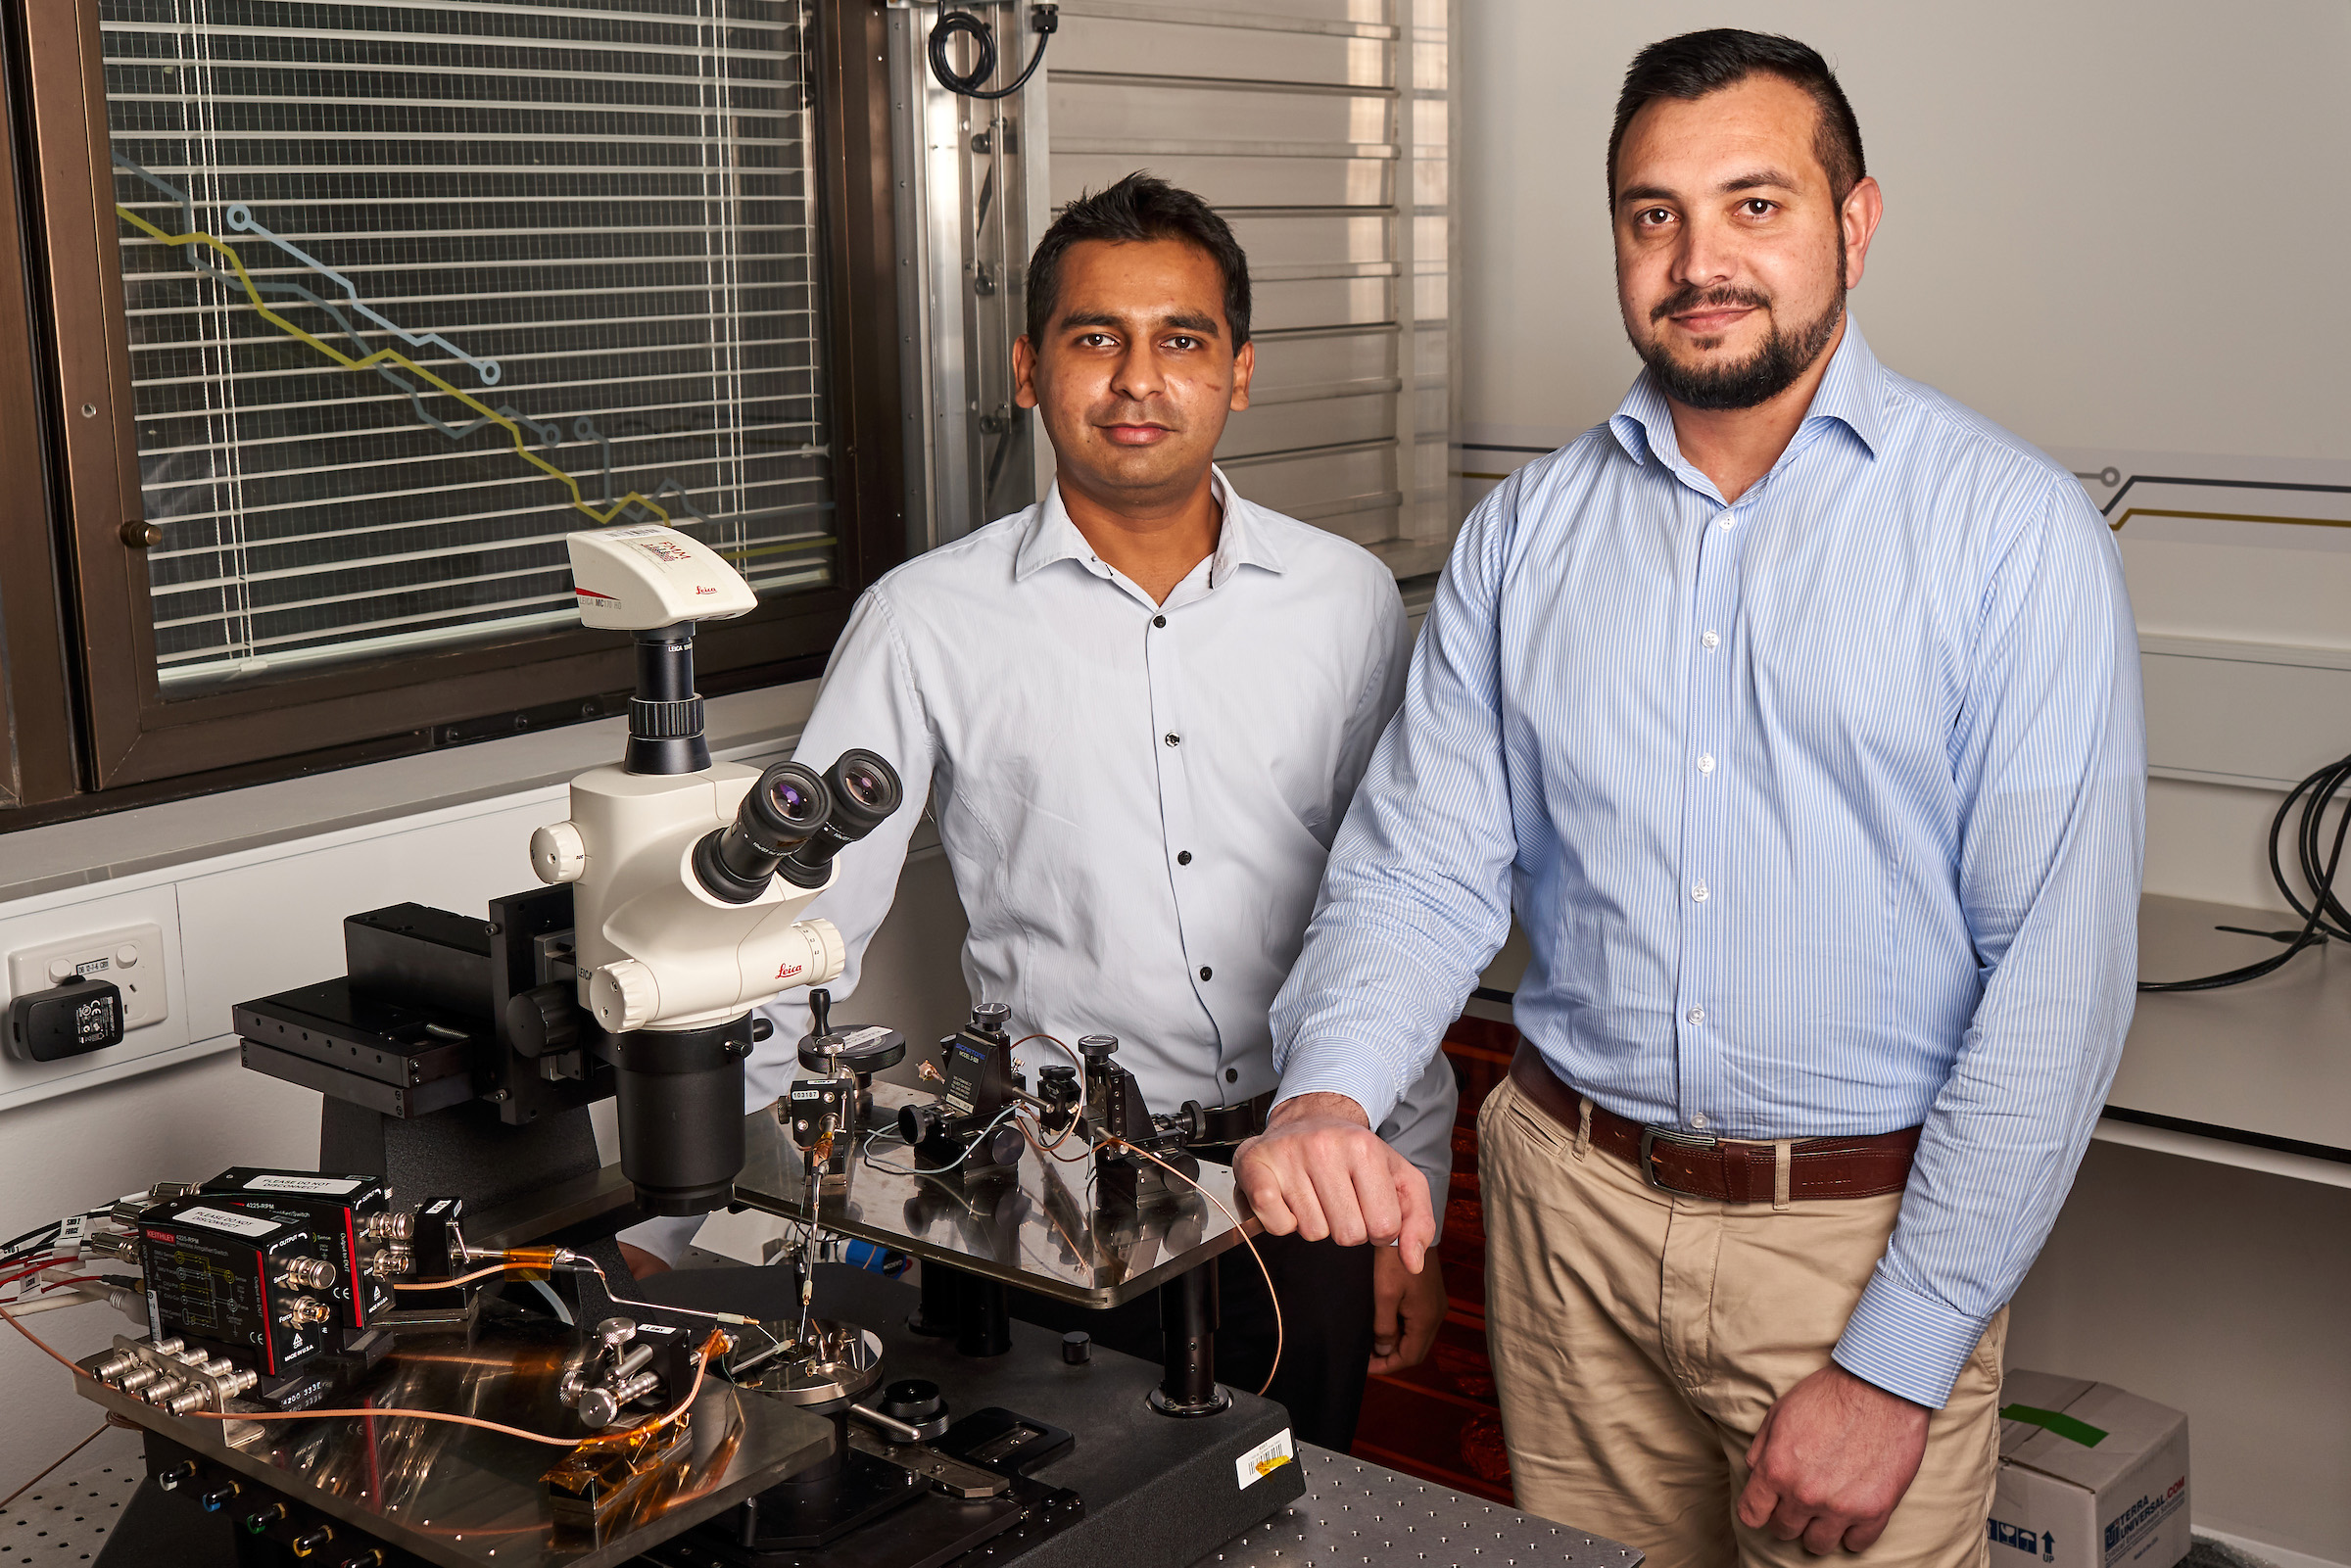 Researchers Dr Sumeet Walia and Dr Taimur Ahmed